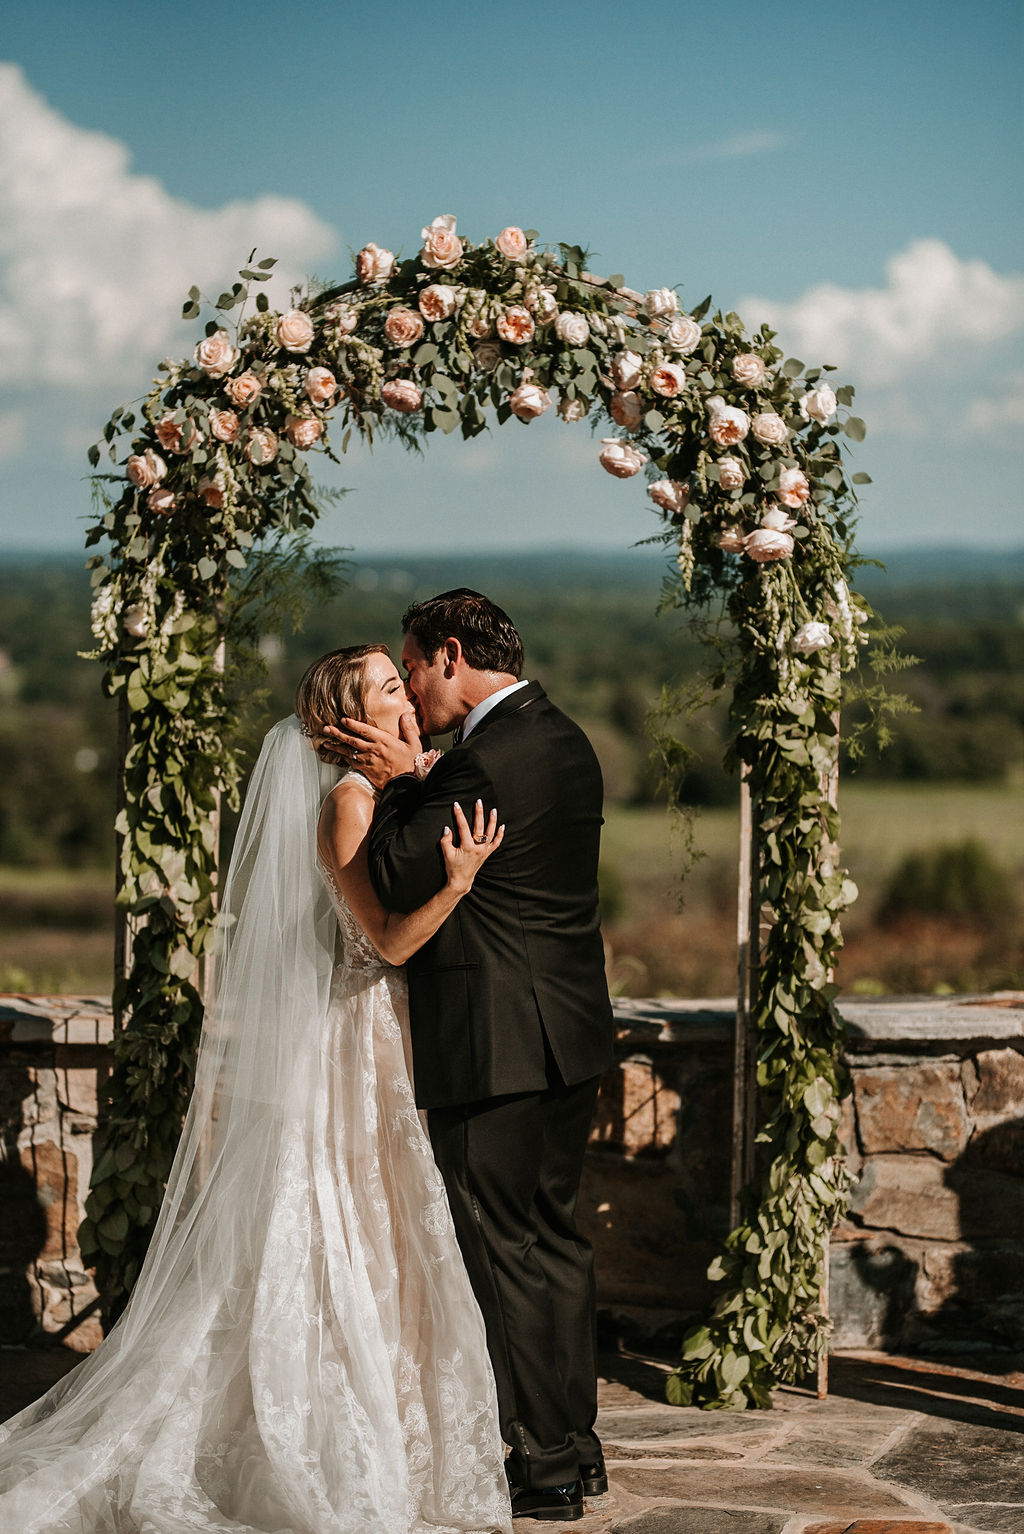 Bride and Groom Kissing at the Alter at Bluemont Vineyard